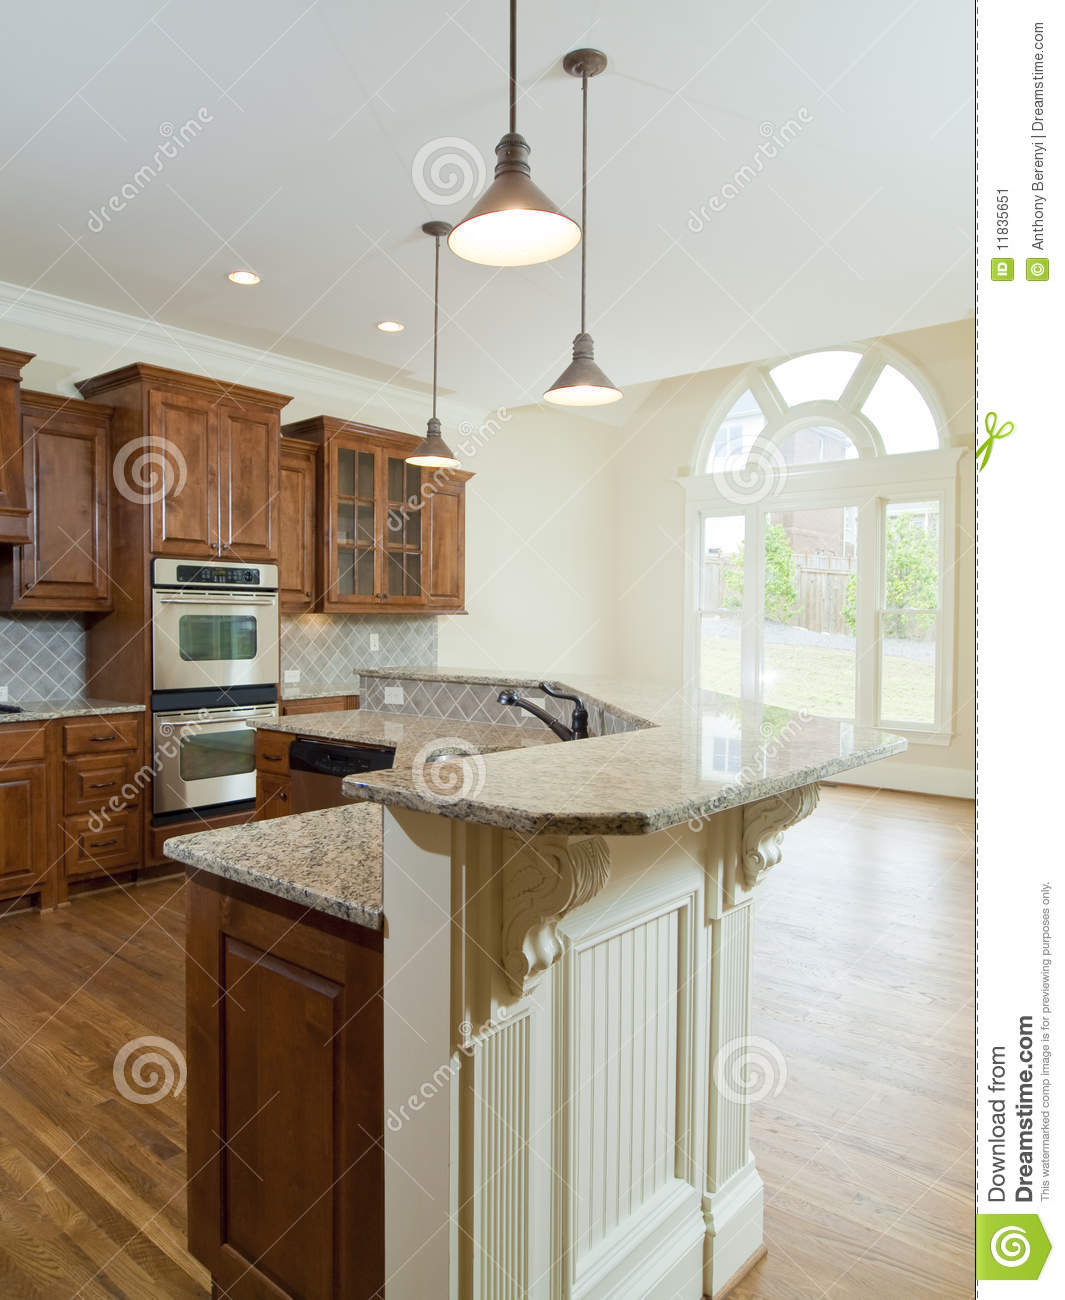 Model luxury home interior kitchen counter stock image for Interieur de maison de luxe